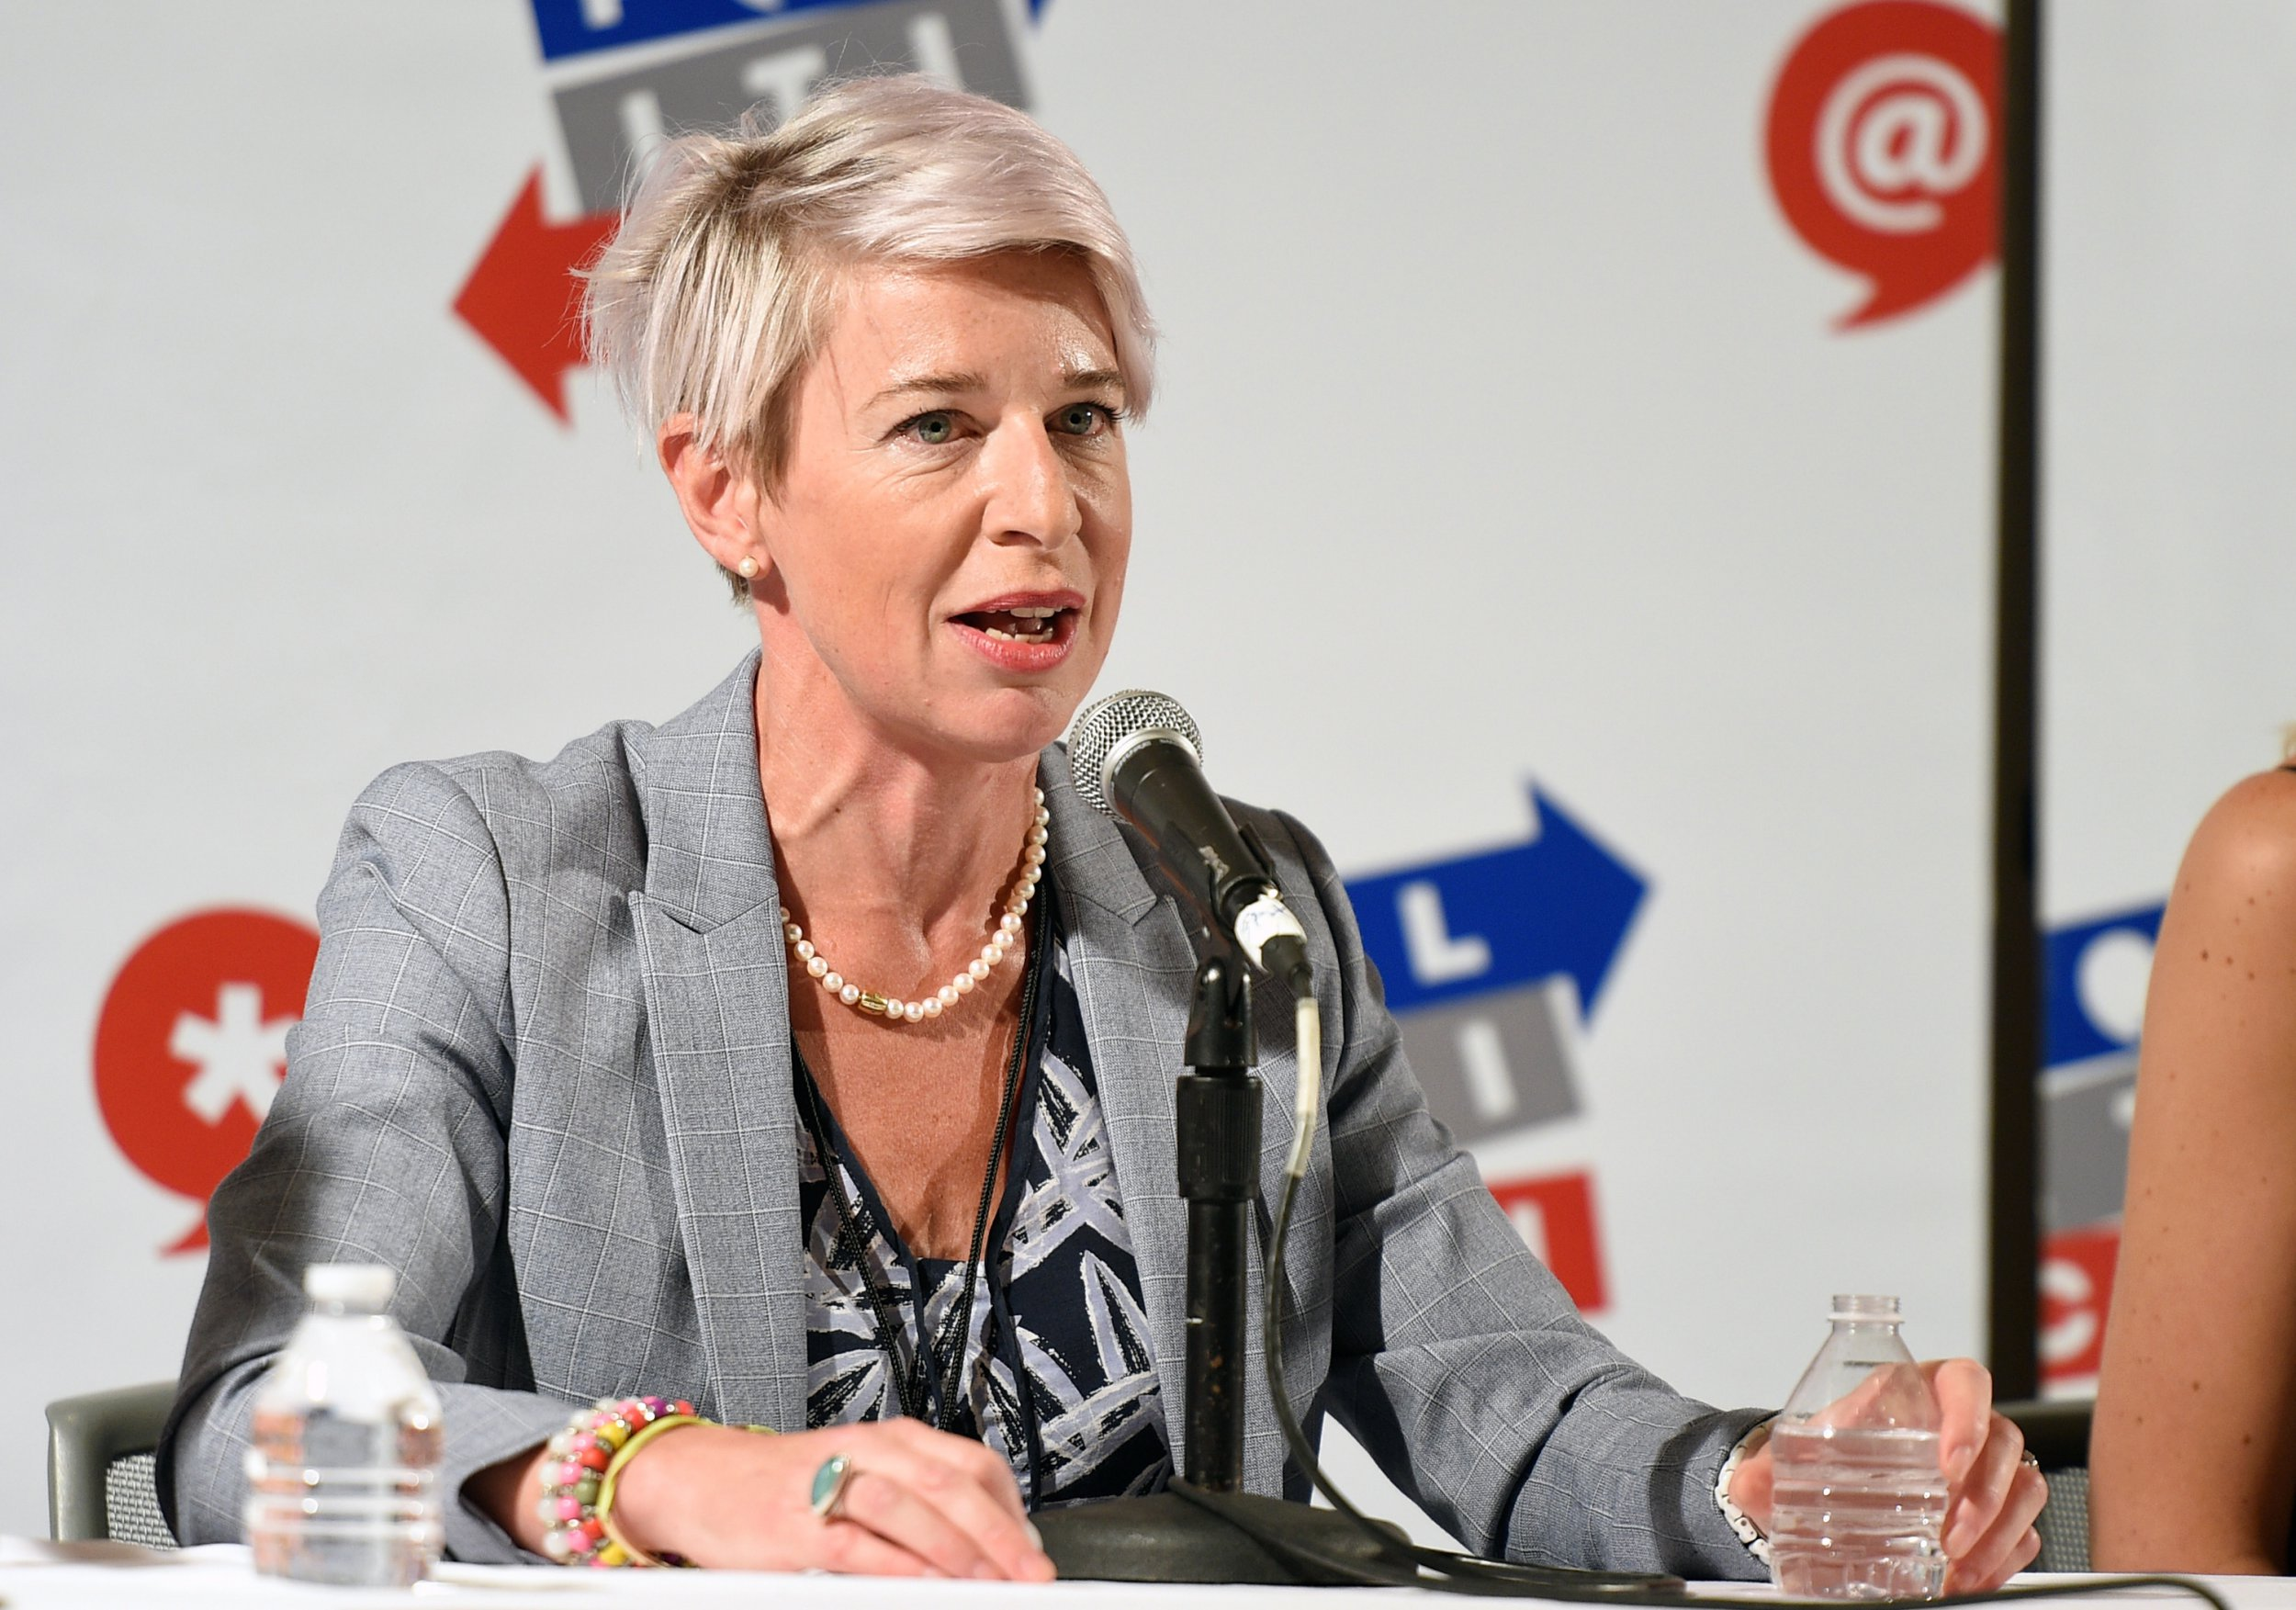 PASADENA, CA - JULY 29: Katie Hopkins at 'Sex, Presidents & Handmaids Hosted by Lady Freak' panel during Politicon at Pasadena Convention Center on July 29, 2017 in Pasadena, California. (Photo by Joshua Blanchard/Getty Images for Politicon)